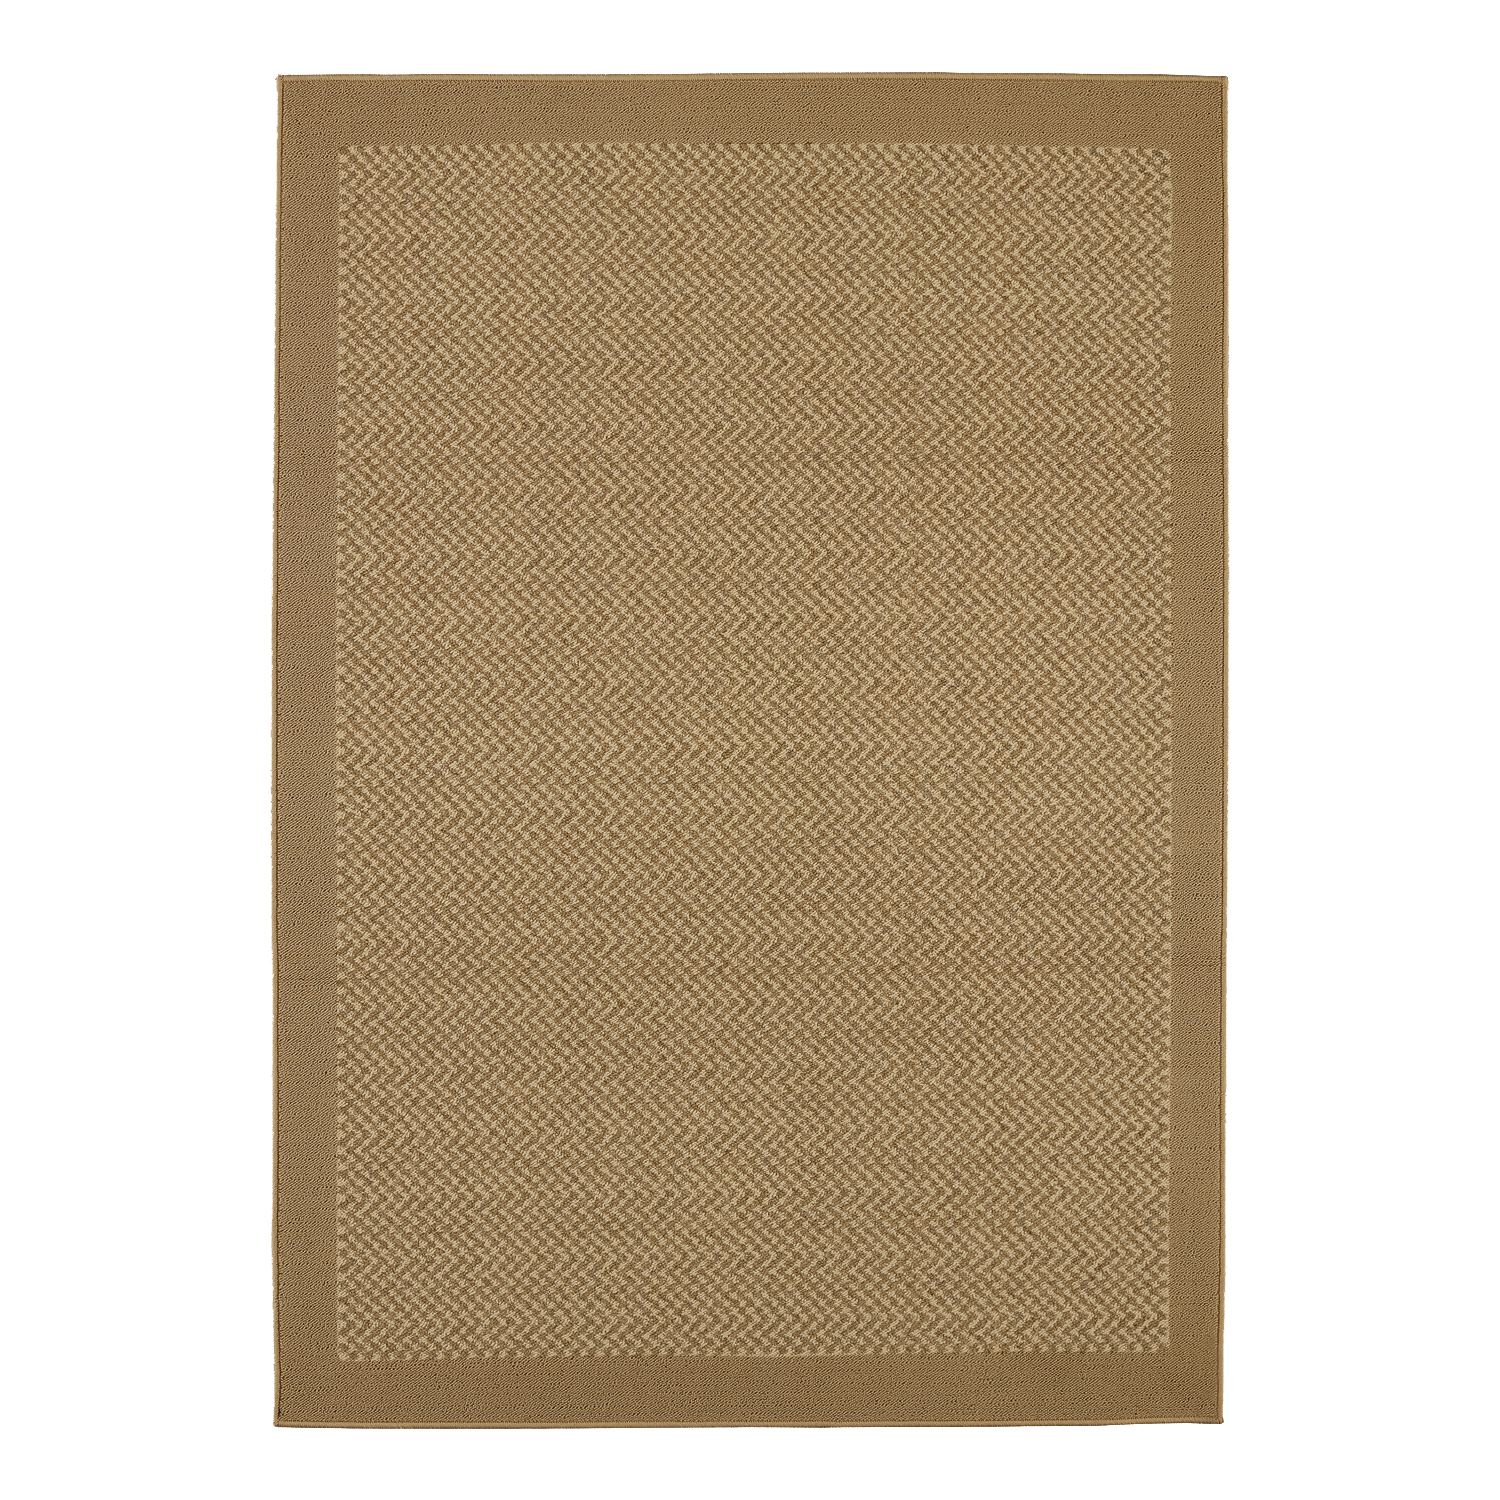 Mainstays Indoor/Outdoor Tufted Area Rug, Khaki and Tan